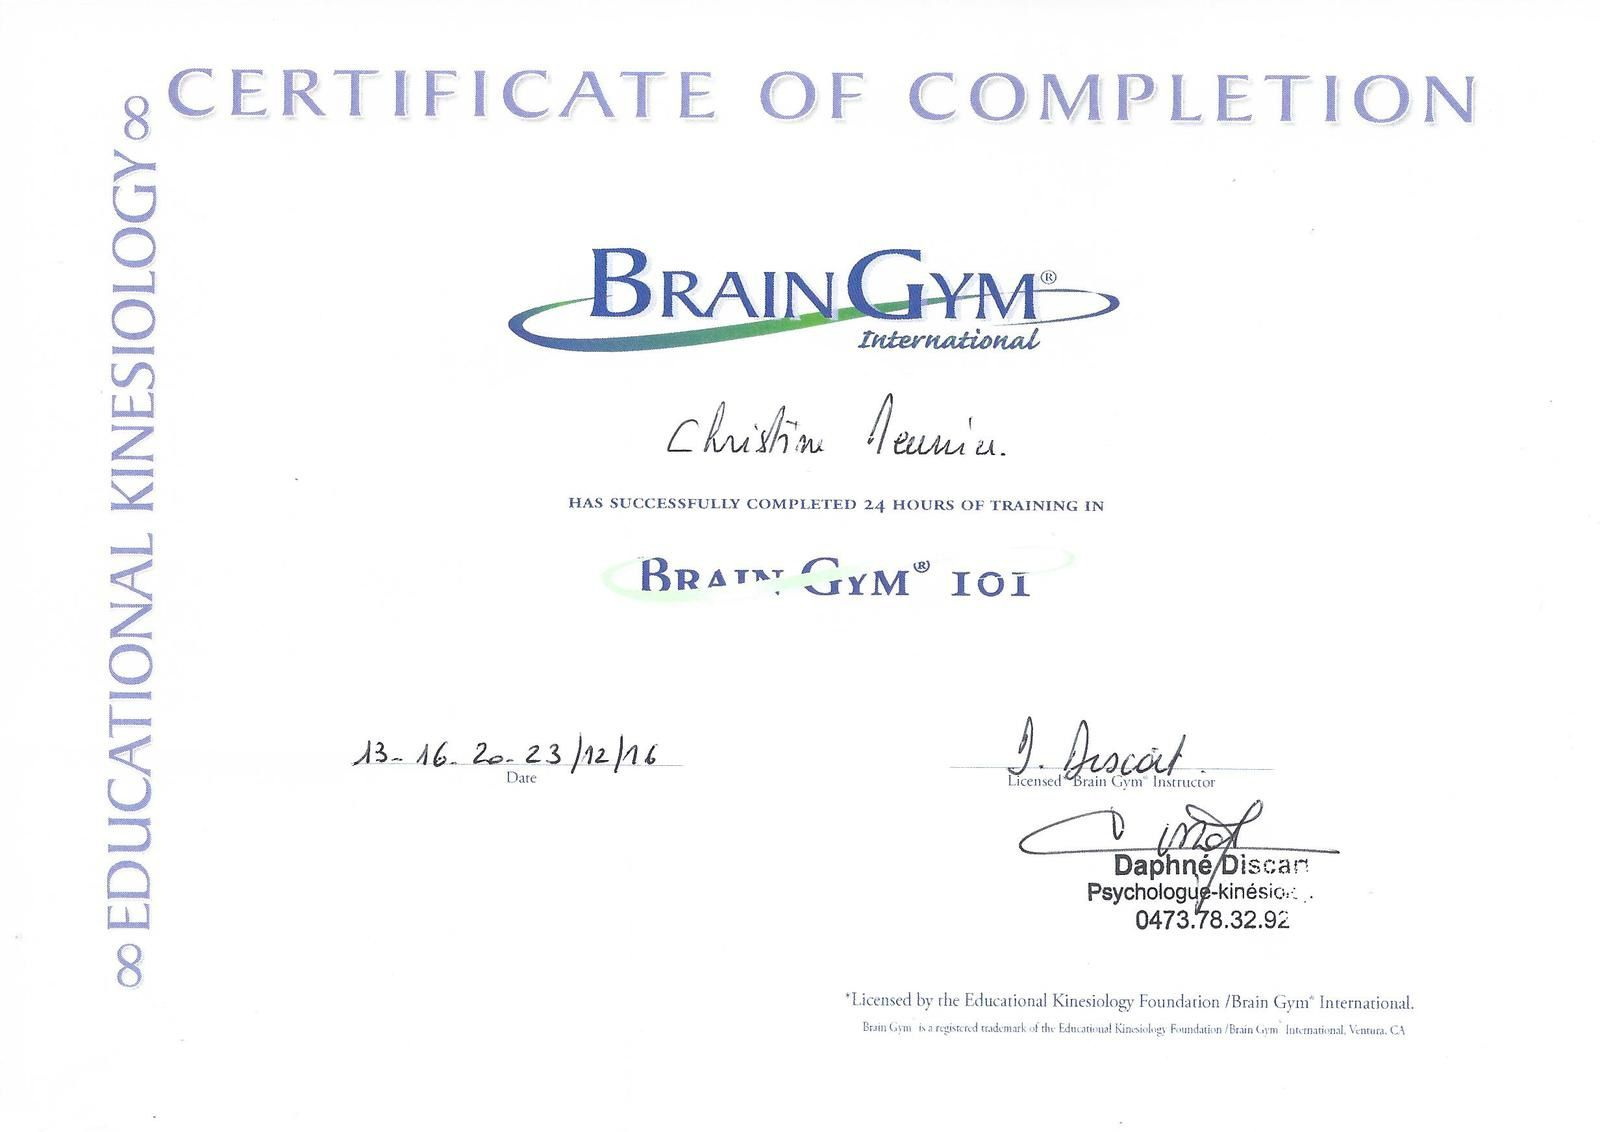 65 - Certificate of completion Brain Gym® 101